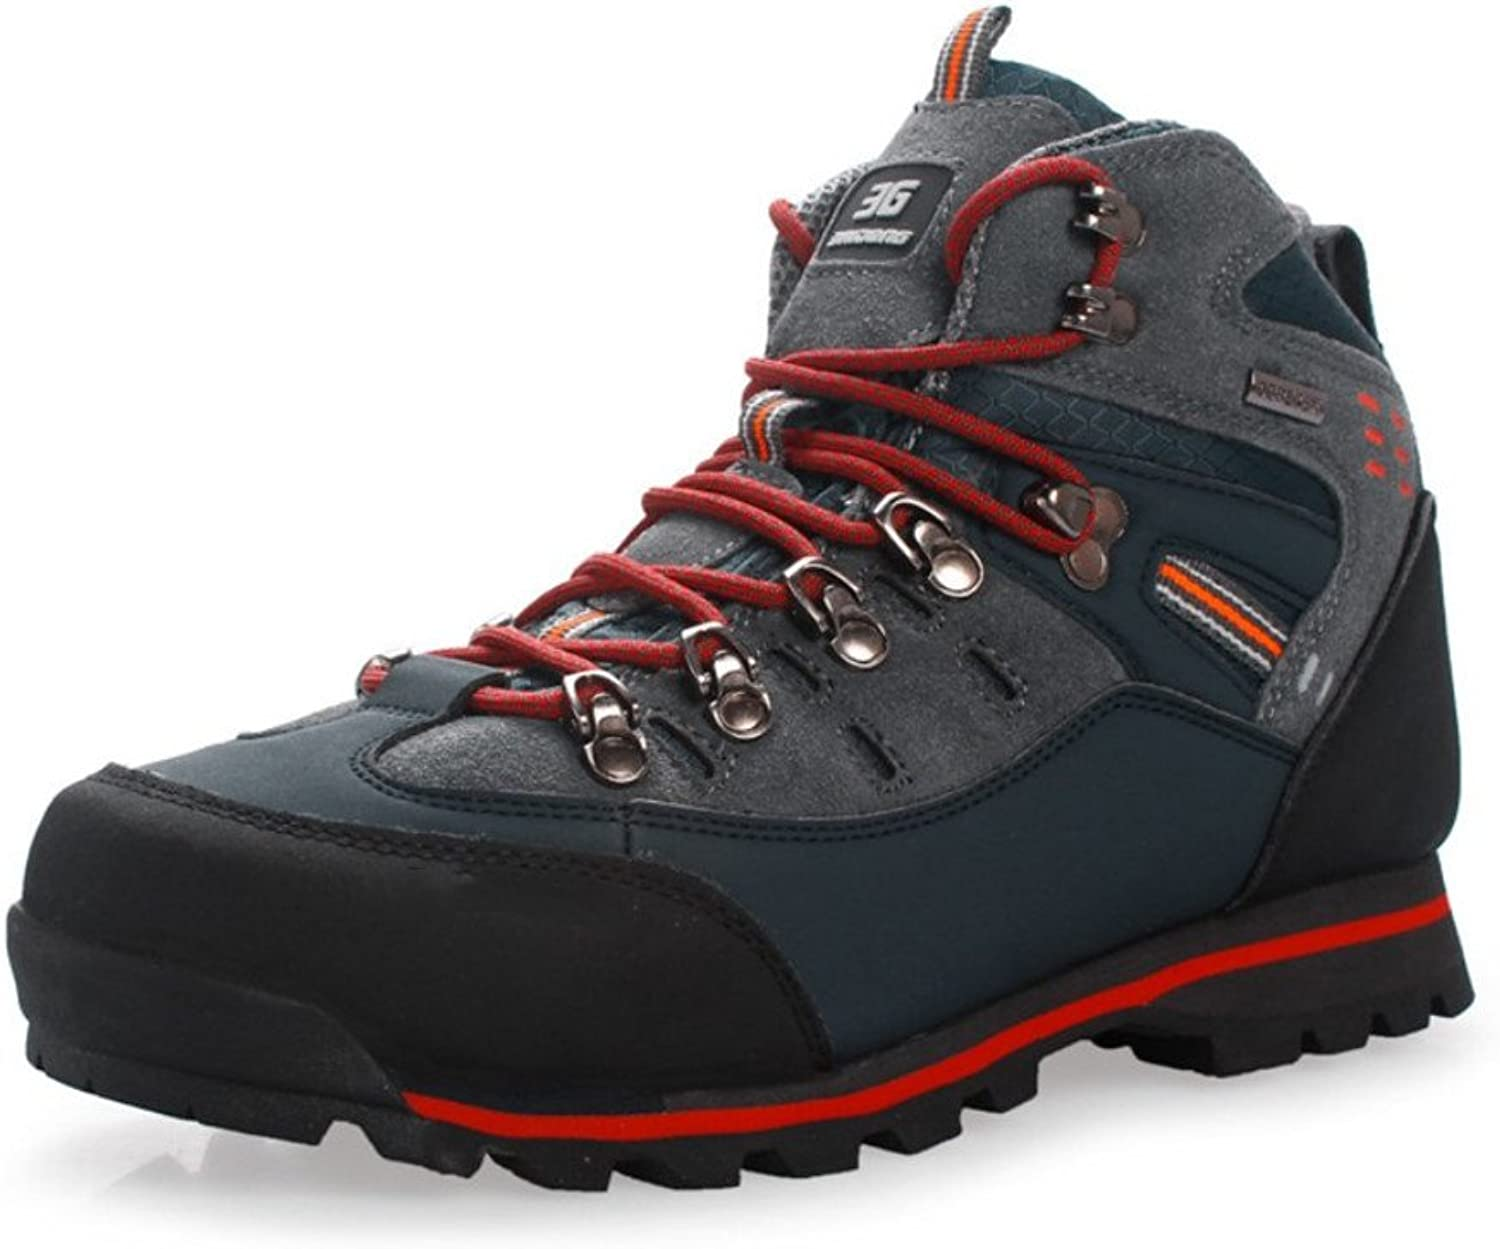 Hiking shoes, Men Walking shoes - Quick Drying Hiking Boots, Suede & Mesh Outer Material